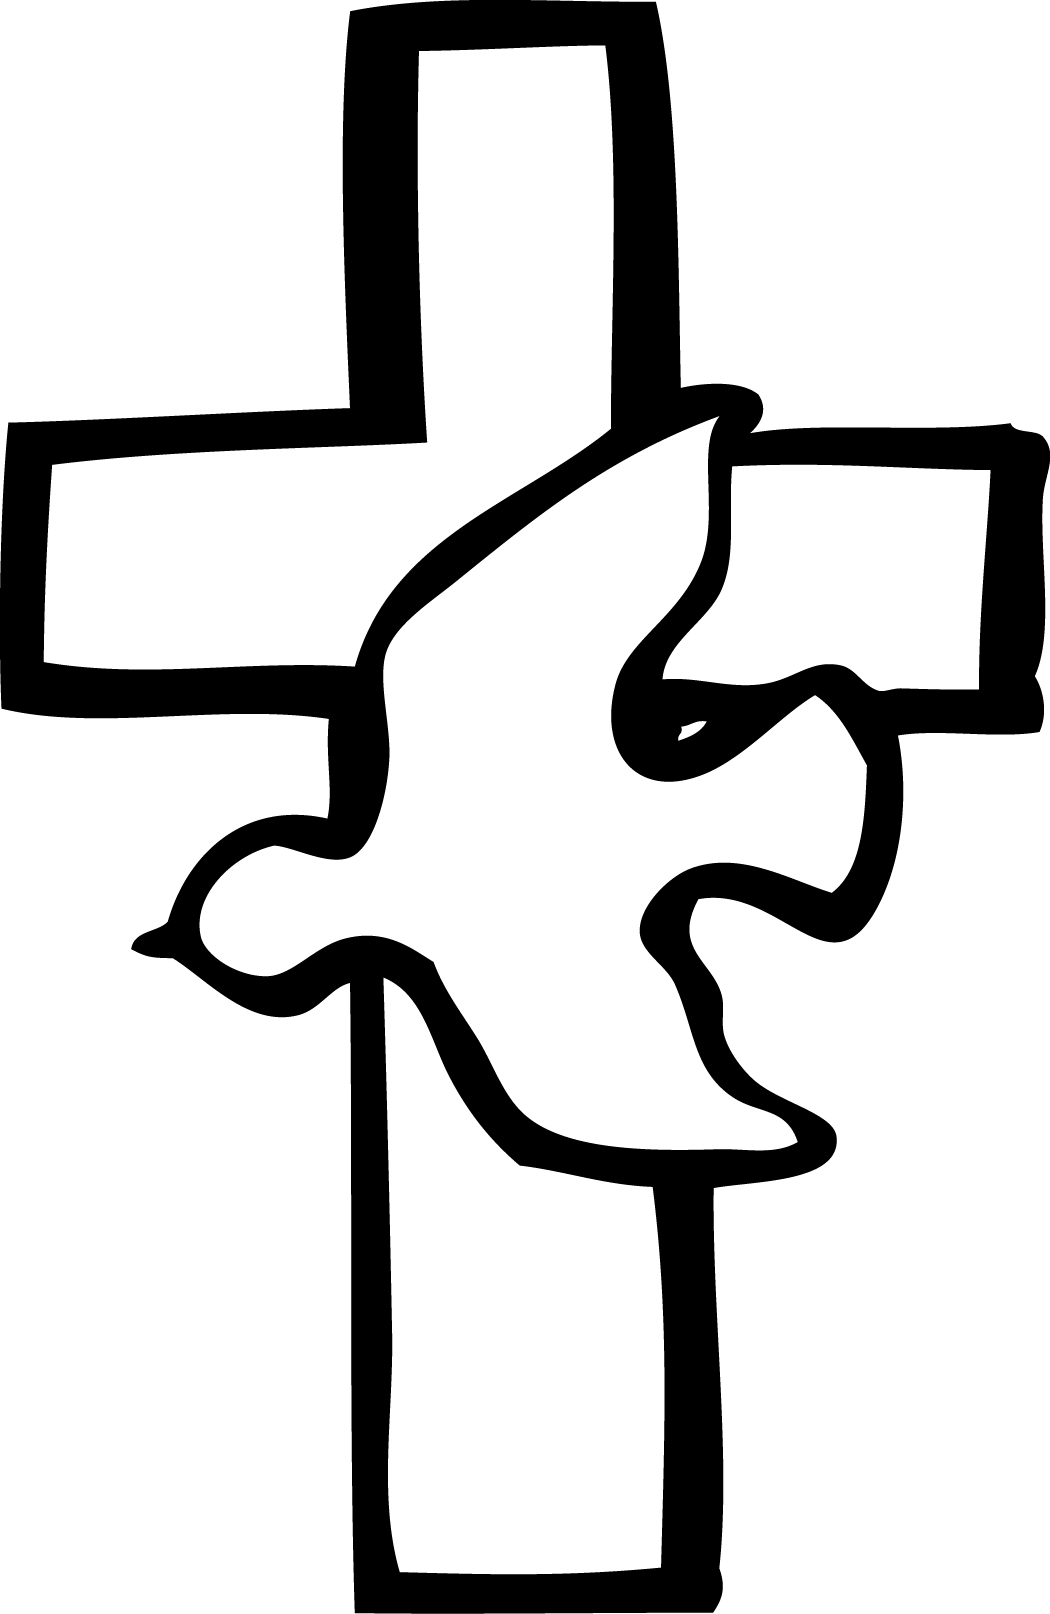 Iron clip art best. Dove & cross clipart